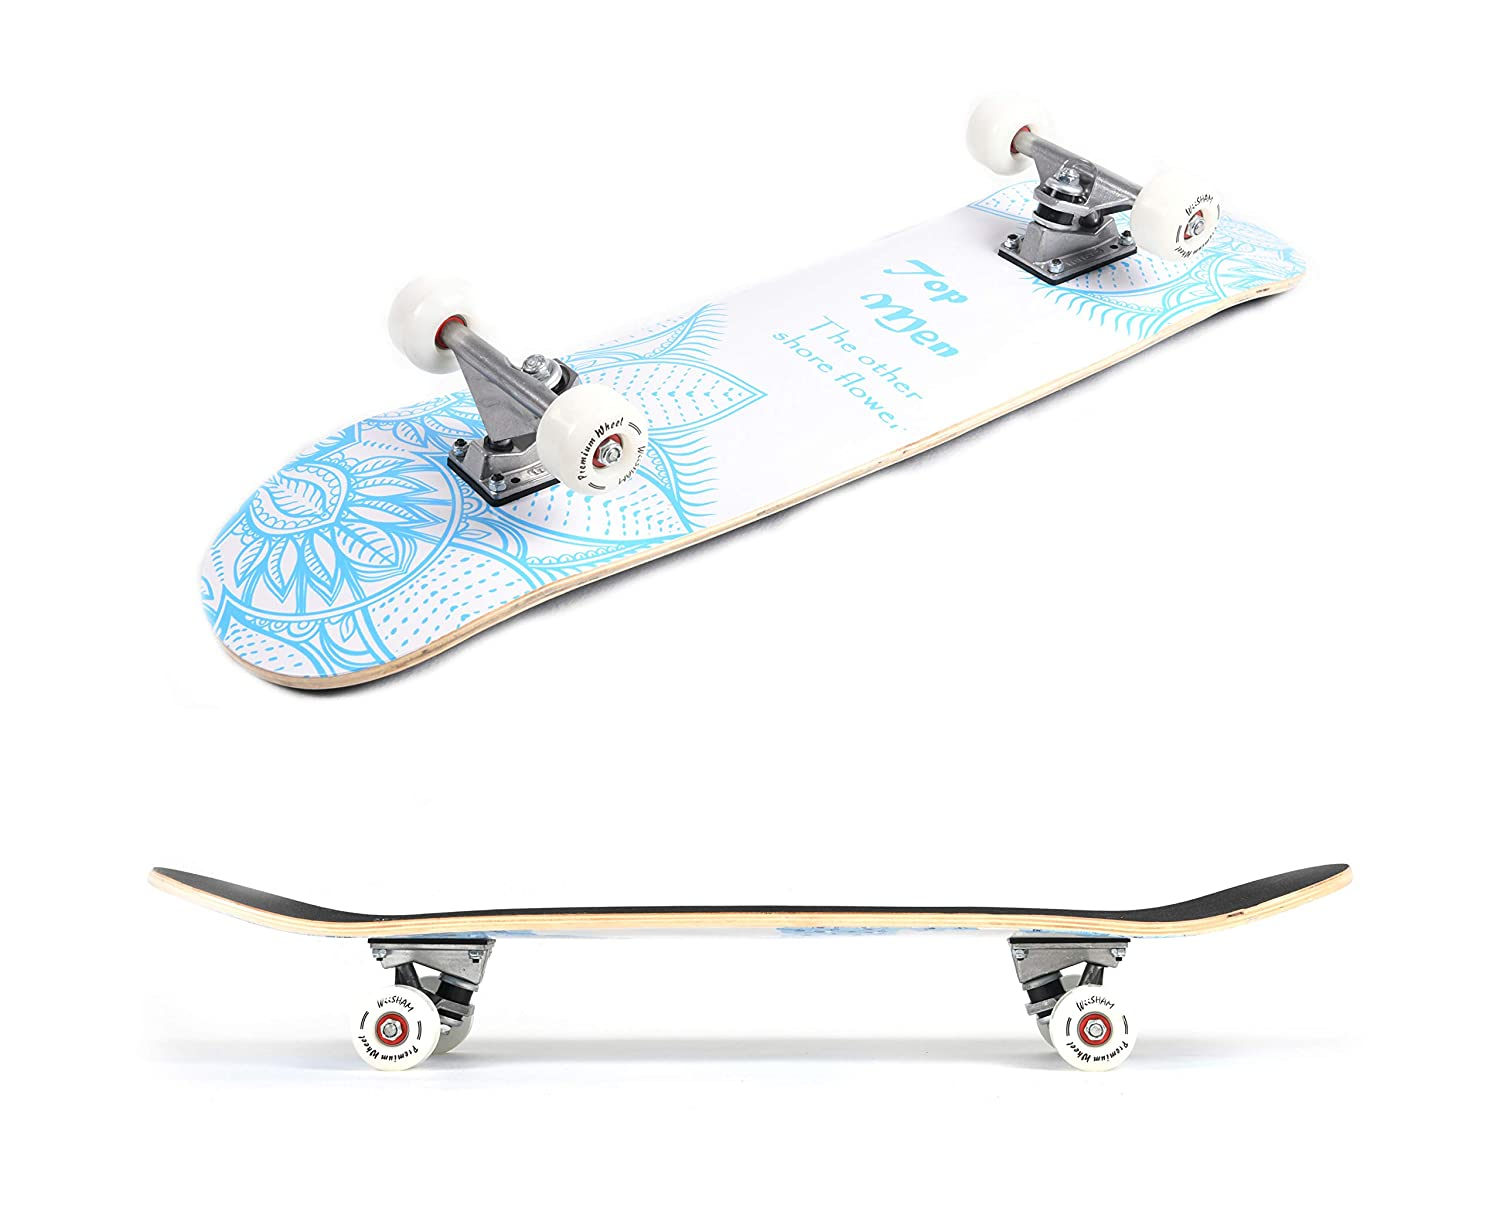 X Free Skateboards 31 Inches Complete Skateboards for Beginners Pro Skateboards 31 Complete Skateboard Skateboards Teens Skateboard Beginners Skateboards Girls Kids Skateboard.Skateboards Adults